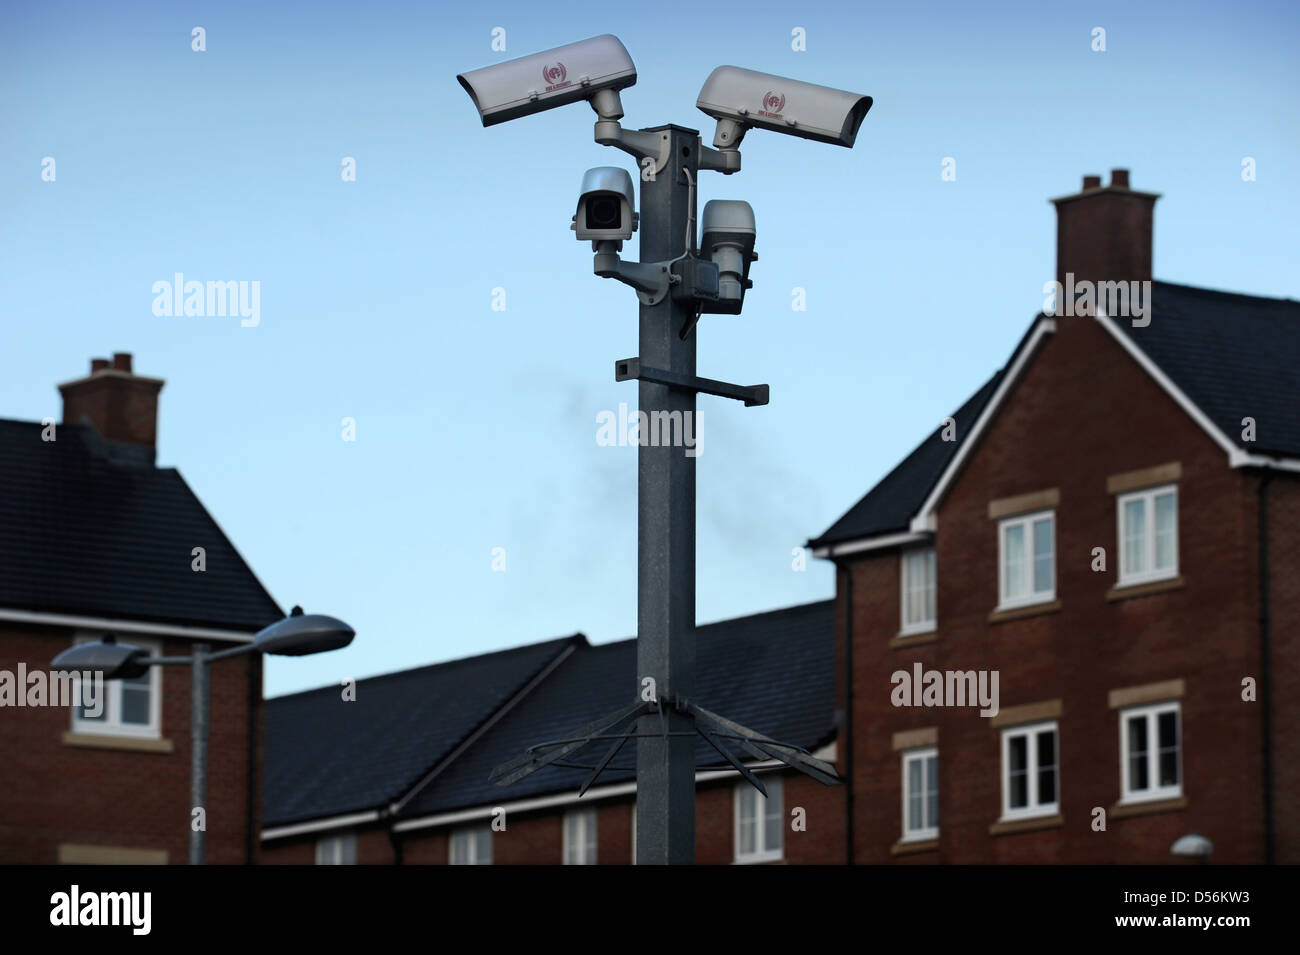 cctv security cameras in a residential area uk - Residential Security Cameras